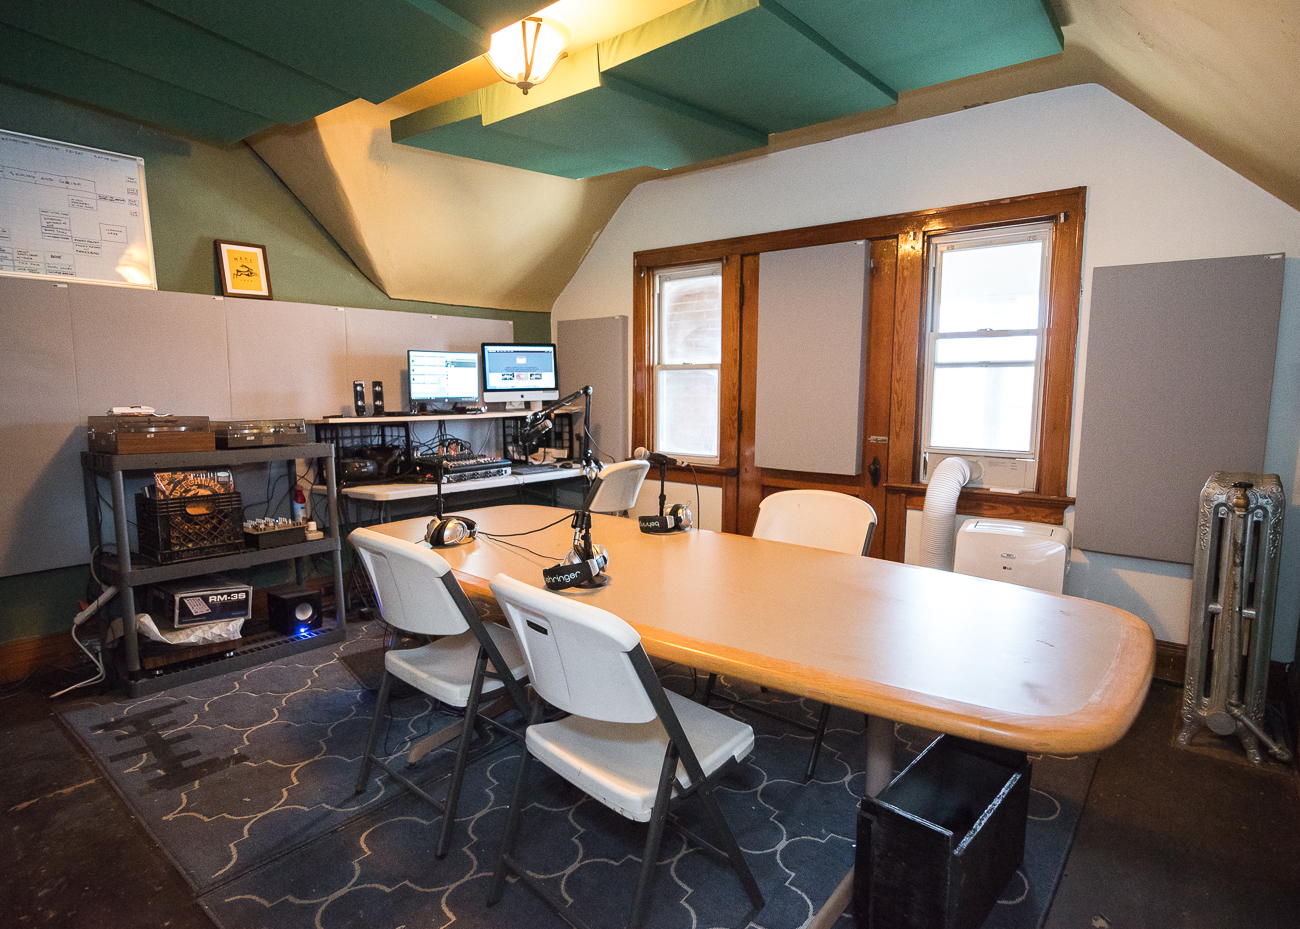 The Main Studio is within a modestly-sized space on the third floor of the building. Microphones rest on a table in the middle of the room for use in podcasting and other recording purposes. Turntables sit beside the soundboard and the station's antenna is just beyond an exterior door that leads to a covered balcony. / Image: Phil Armstrong, Cincinnati Refined // Published: 1.15.18<p></p>